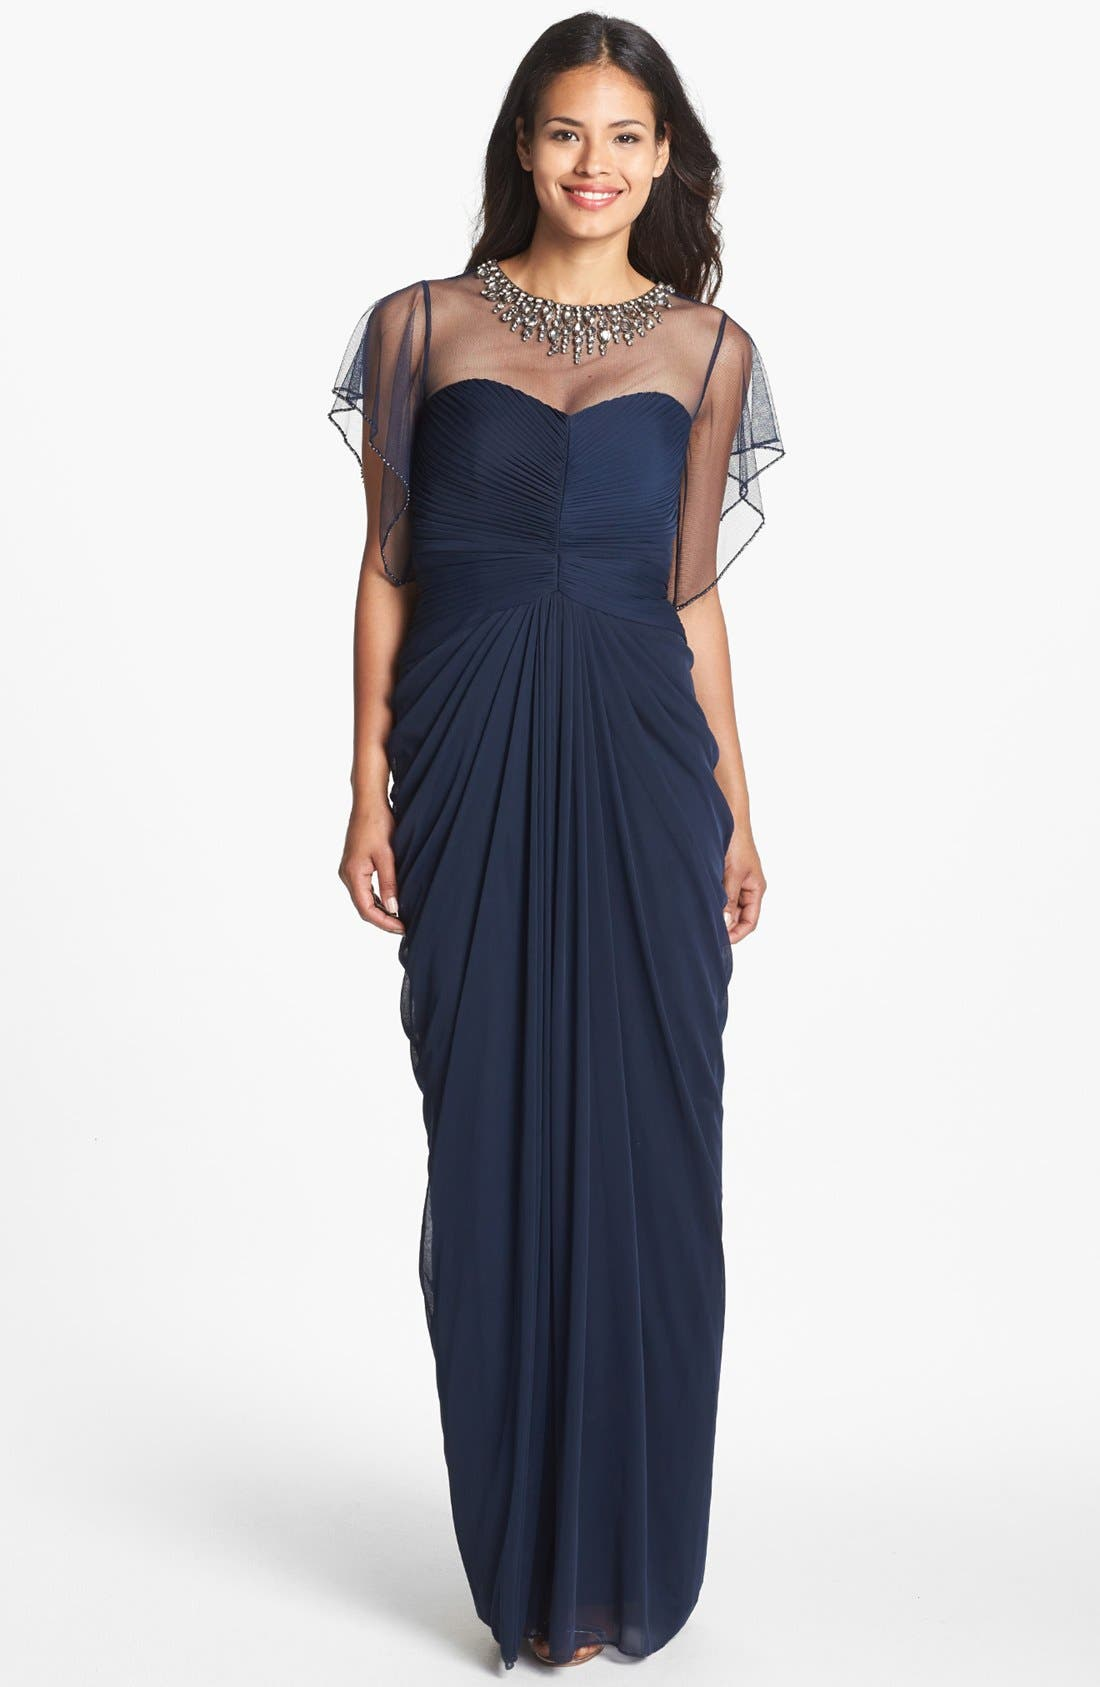 Alternate Image 1 Selected - Adrianna Papell Embellished Illusion Yoke Mesh Gown